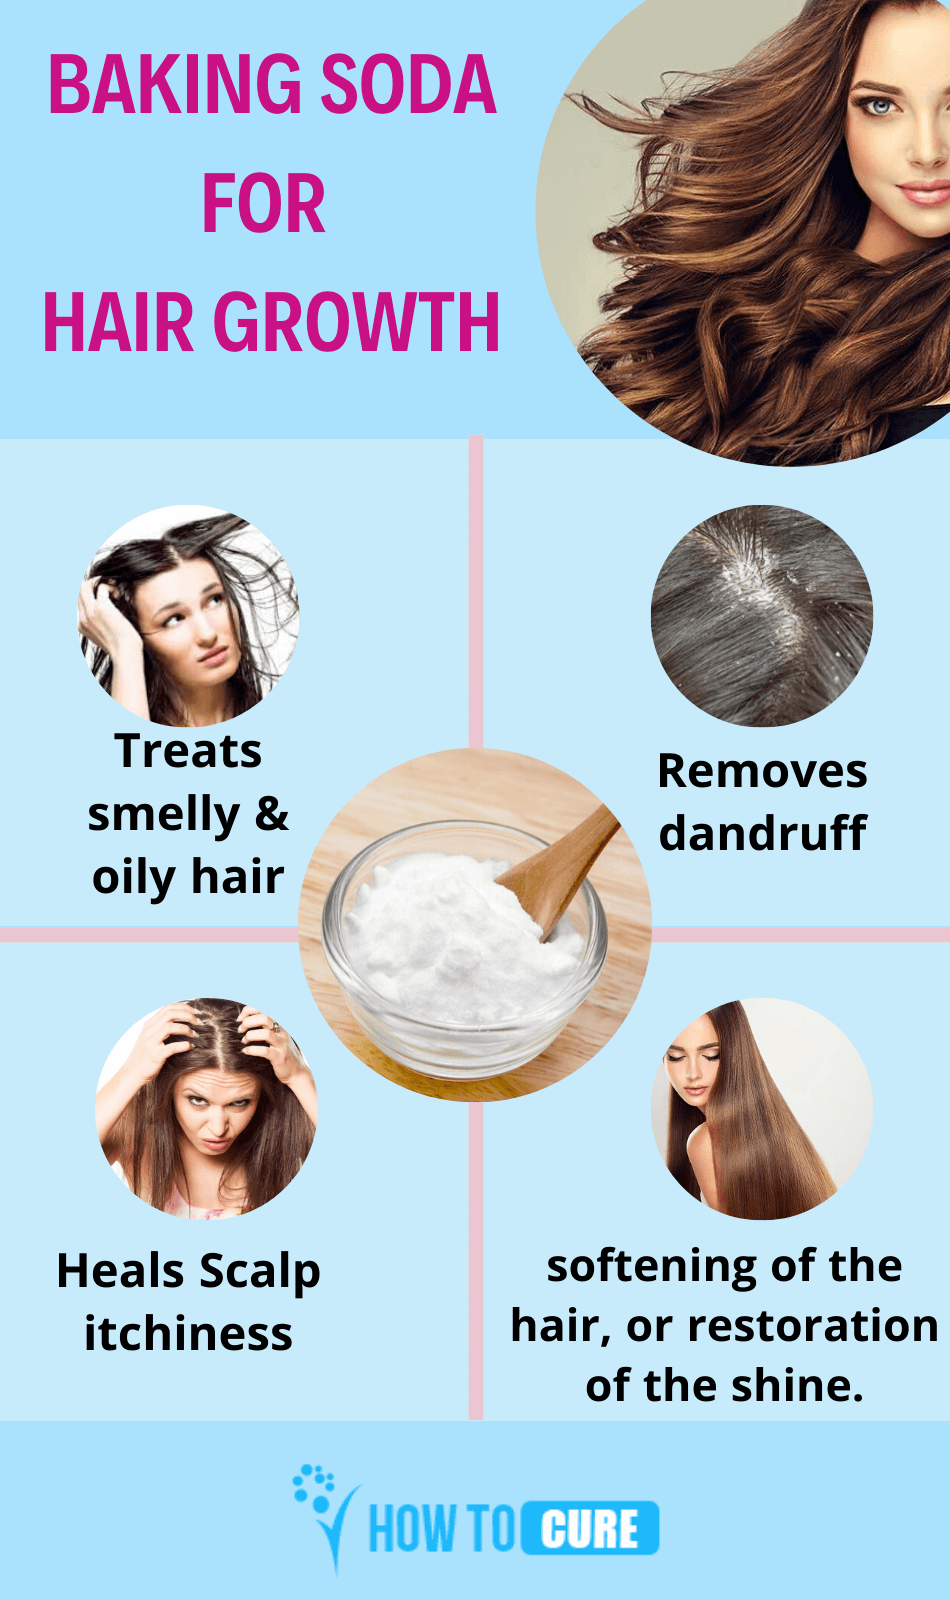 Baking Soda for Hair